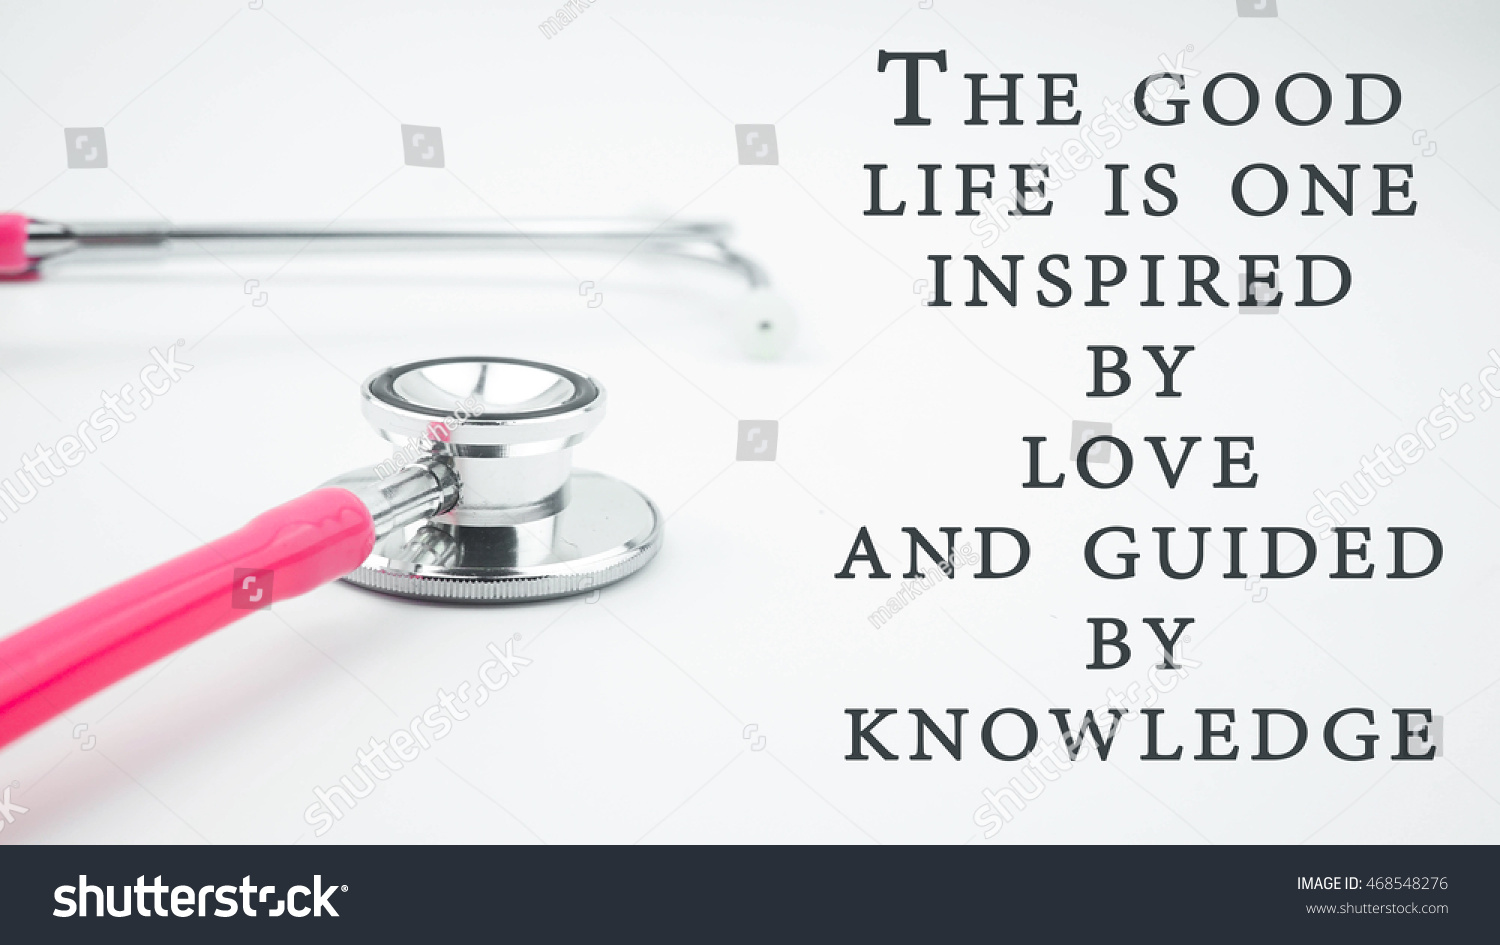 Medical Quotes About Life Royaltyfree Conceptual Image With Quotes The Good… 468548276